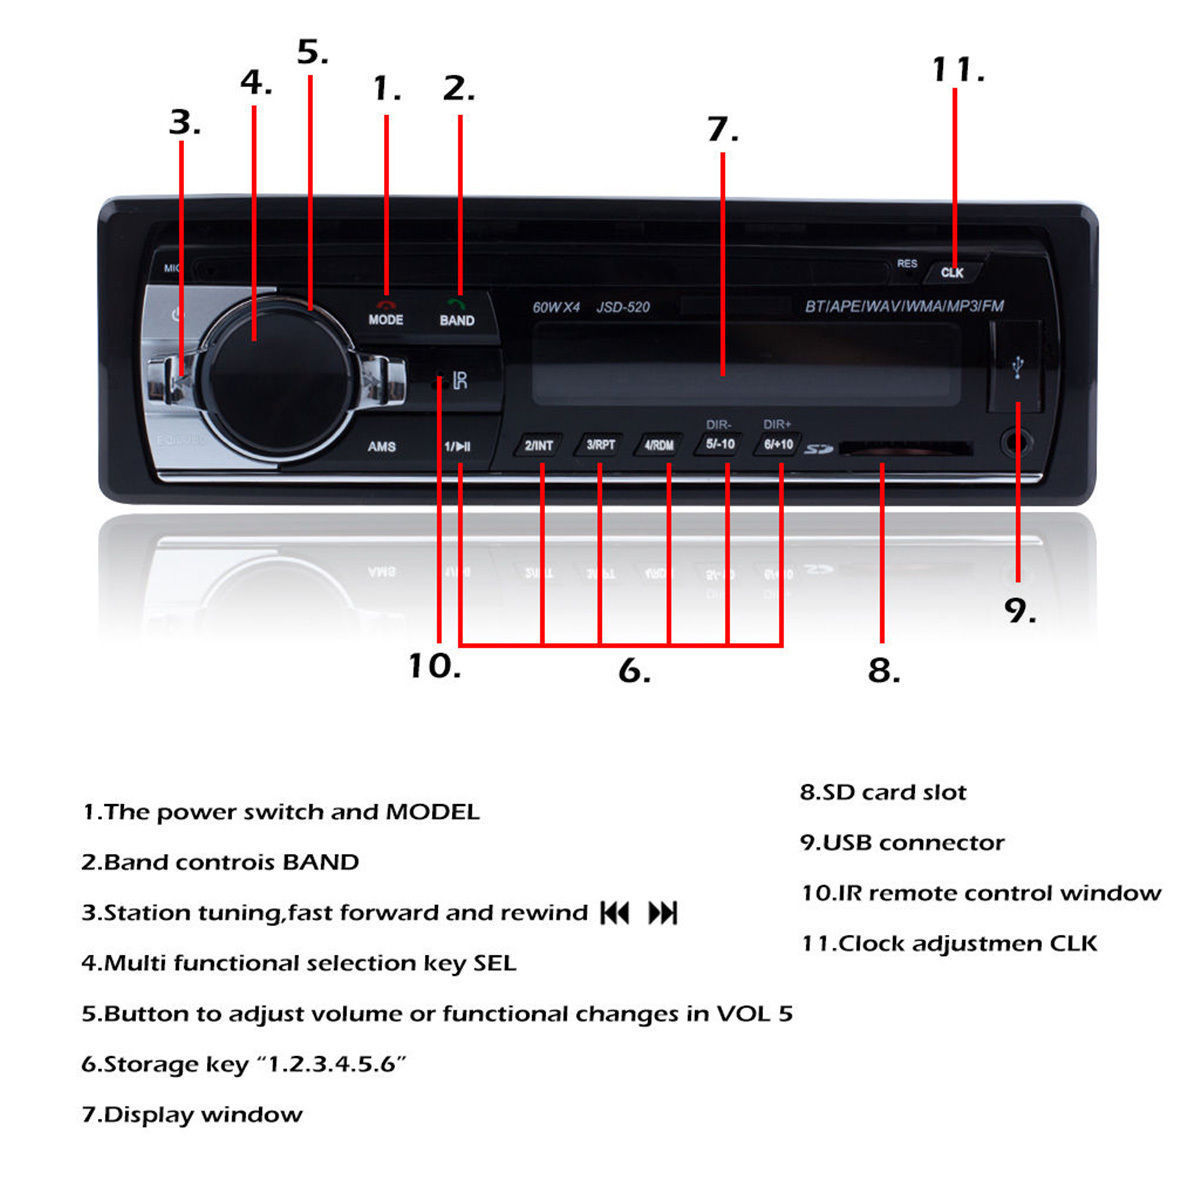 Car Radio 12v Auto Audio Stereo 1din In Dash Mp3 Player Support Fm Usb Circuit Diagram With Iso Port Which Can Connect The Loud Speaker